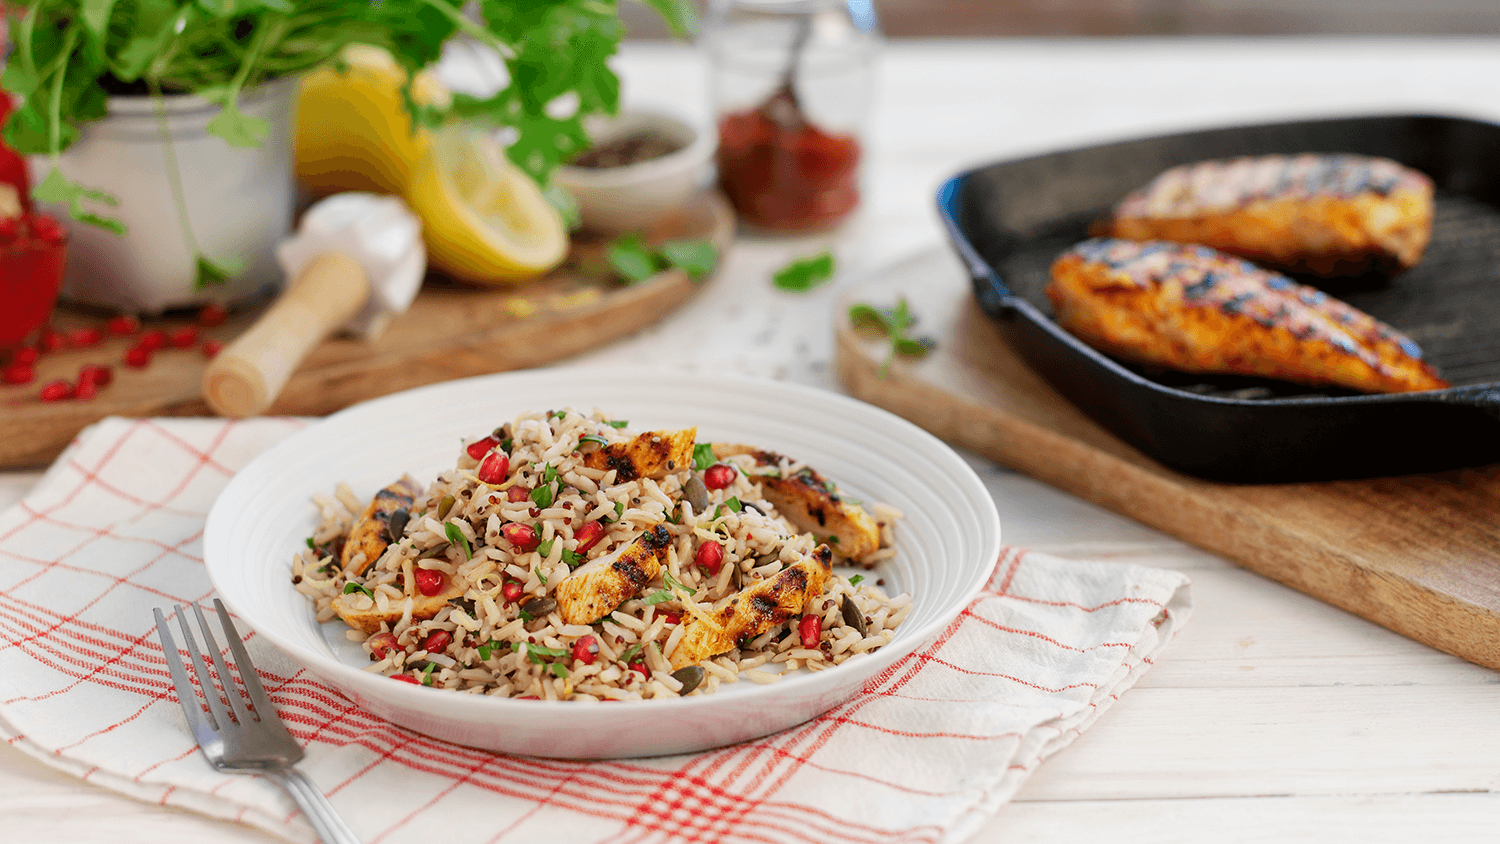 Zesty Lemon Chicken With Pomegranate & Coriander